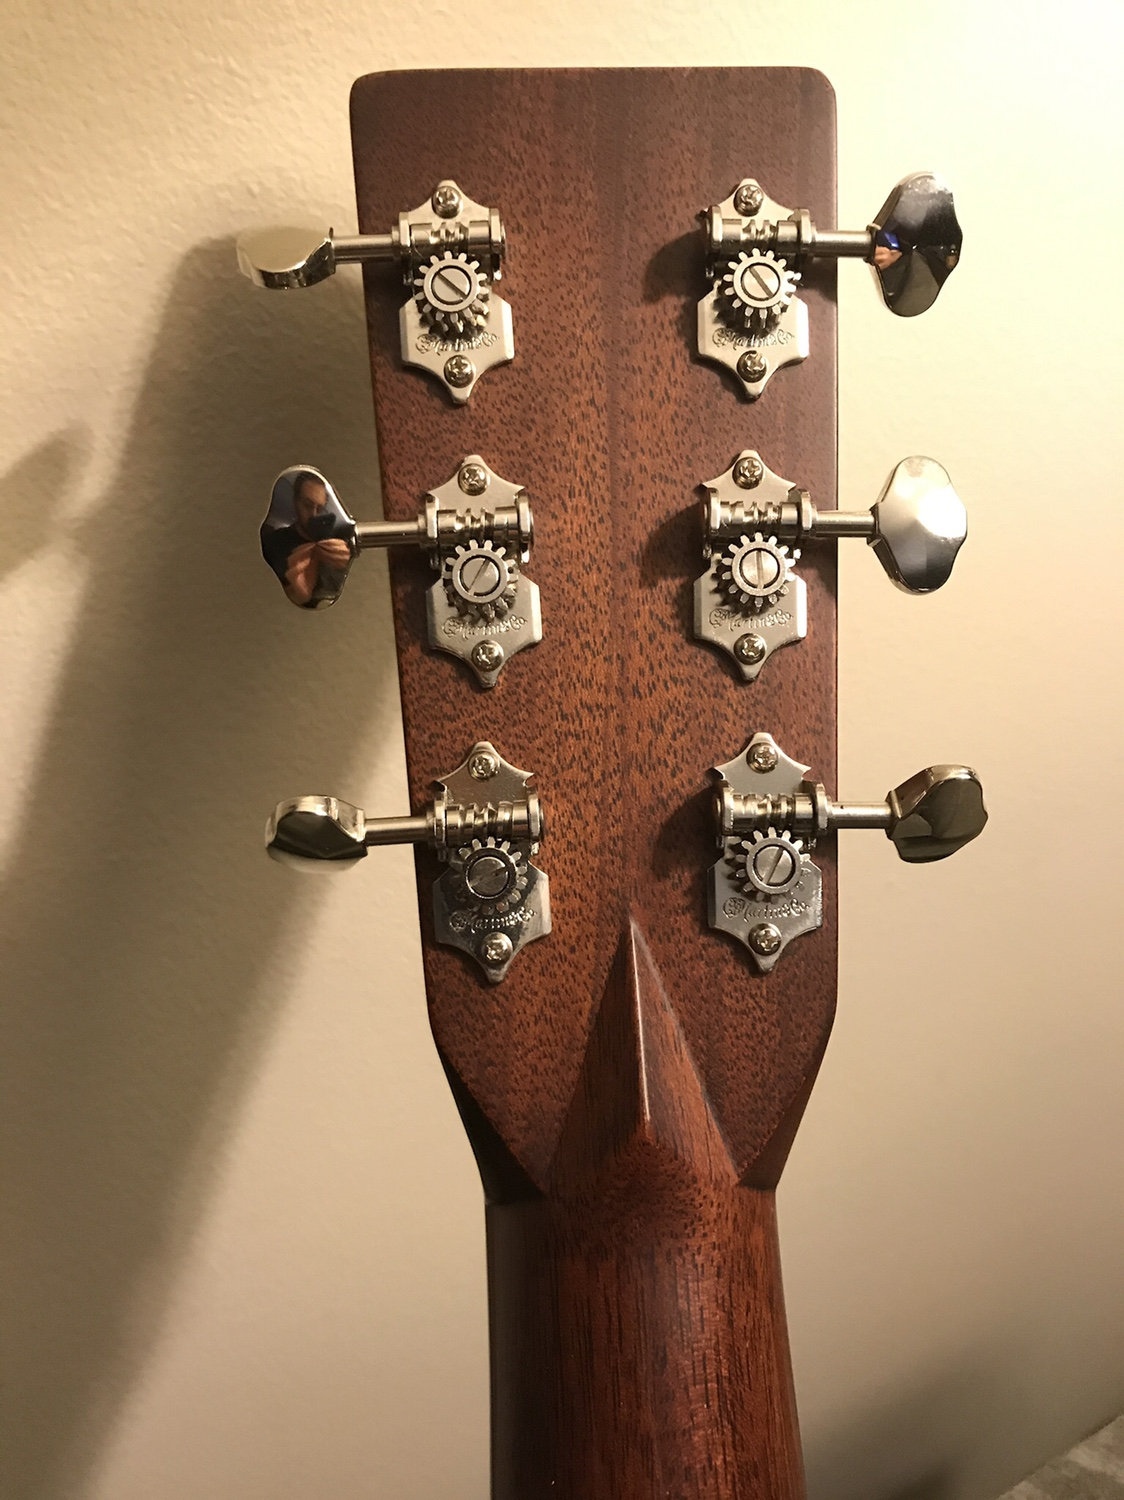 Martin Hd 28v Tuners The Acoustic Guitar Forum